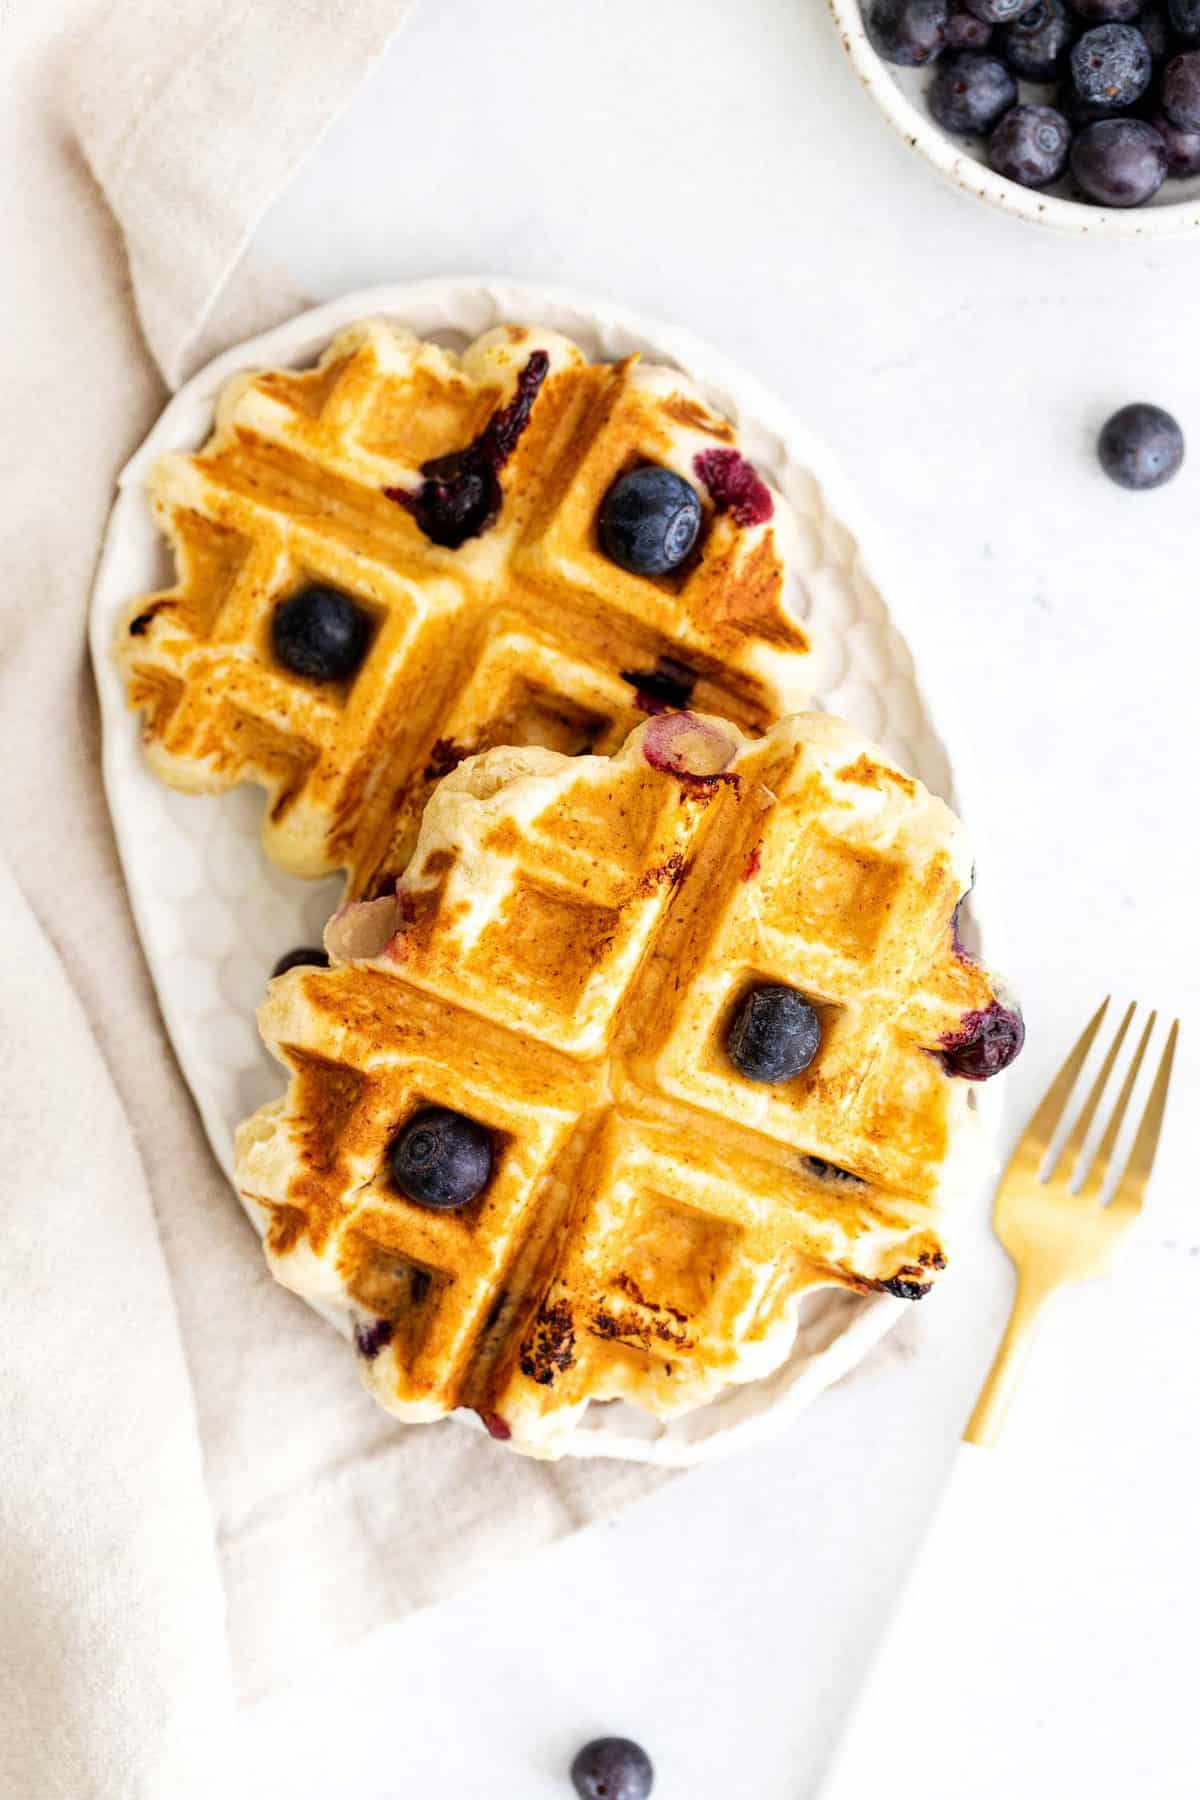 Waffles on a small oval plate, sprinkled with blueberries.